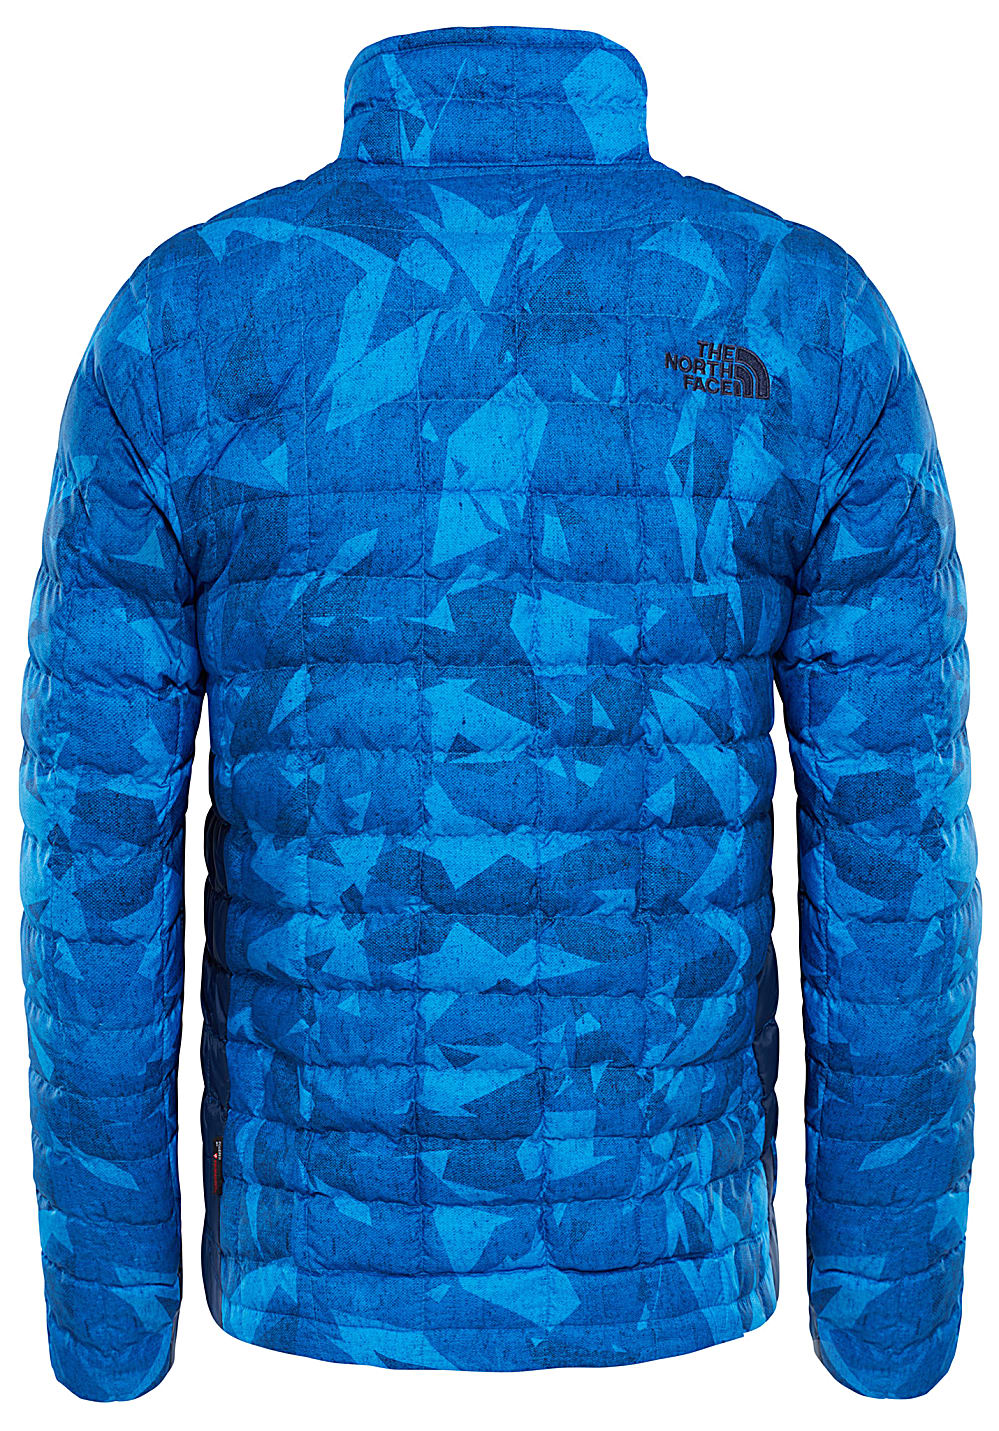 THE NORTH FACE Thermoball - Outdoorjacke für Jungs Blau